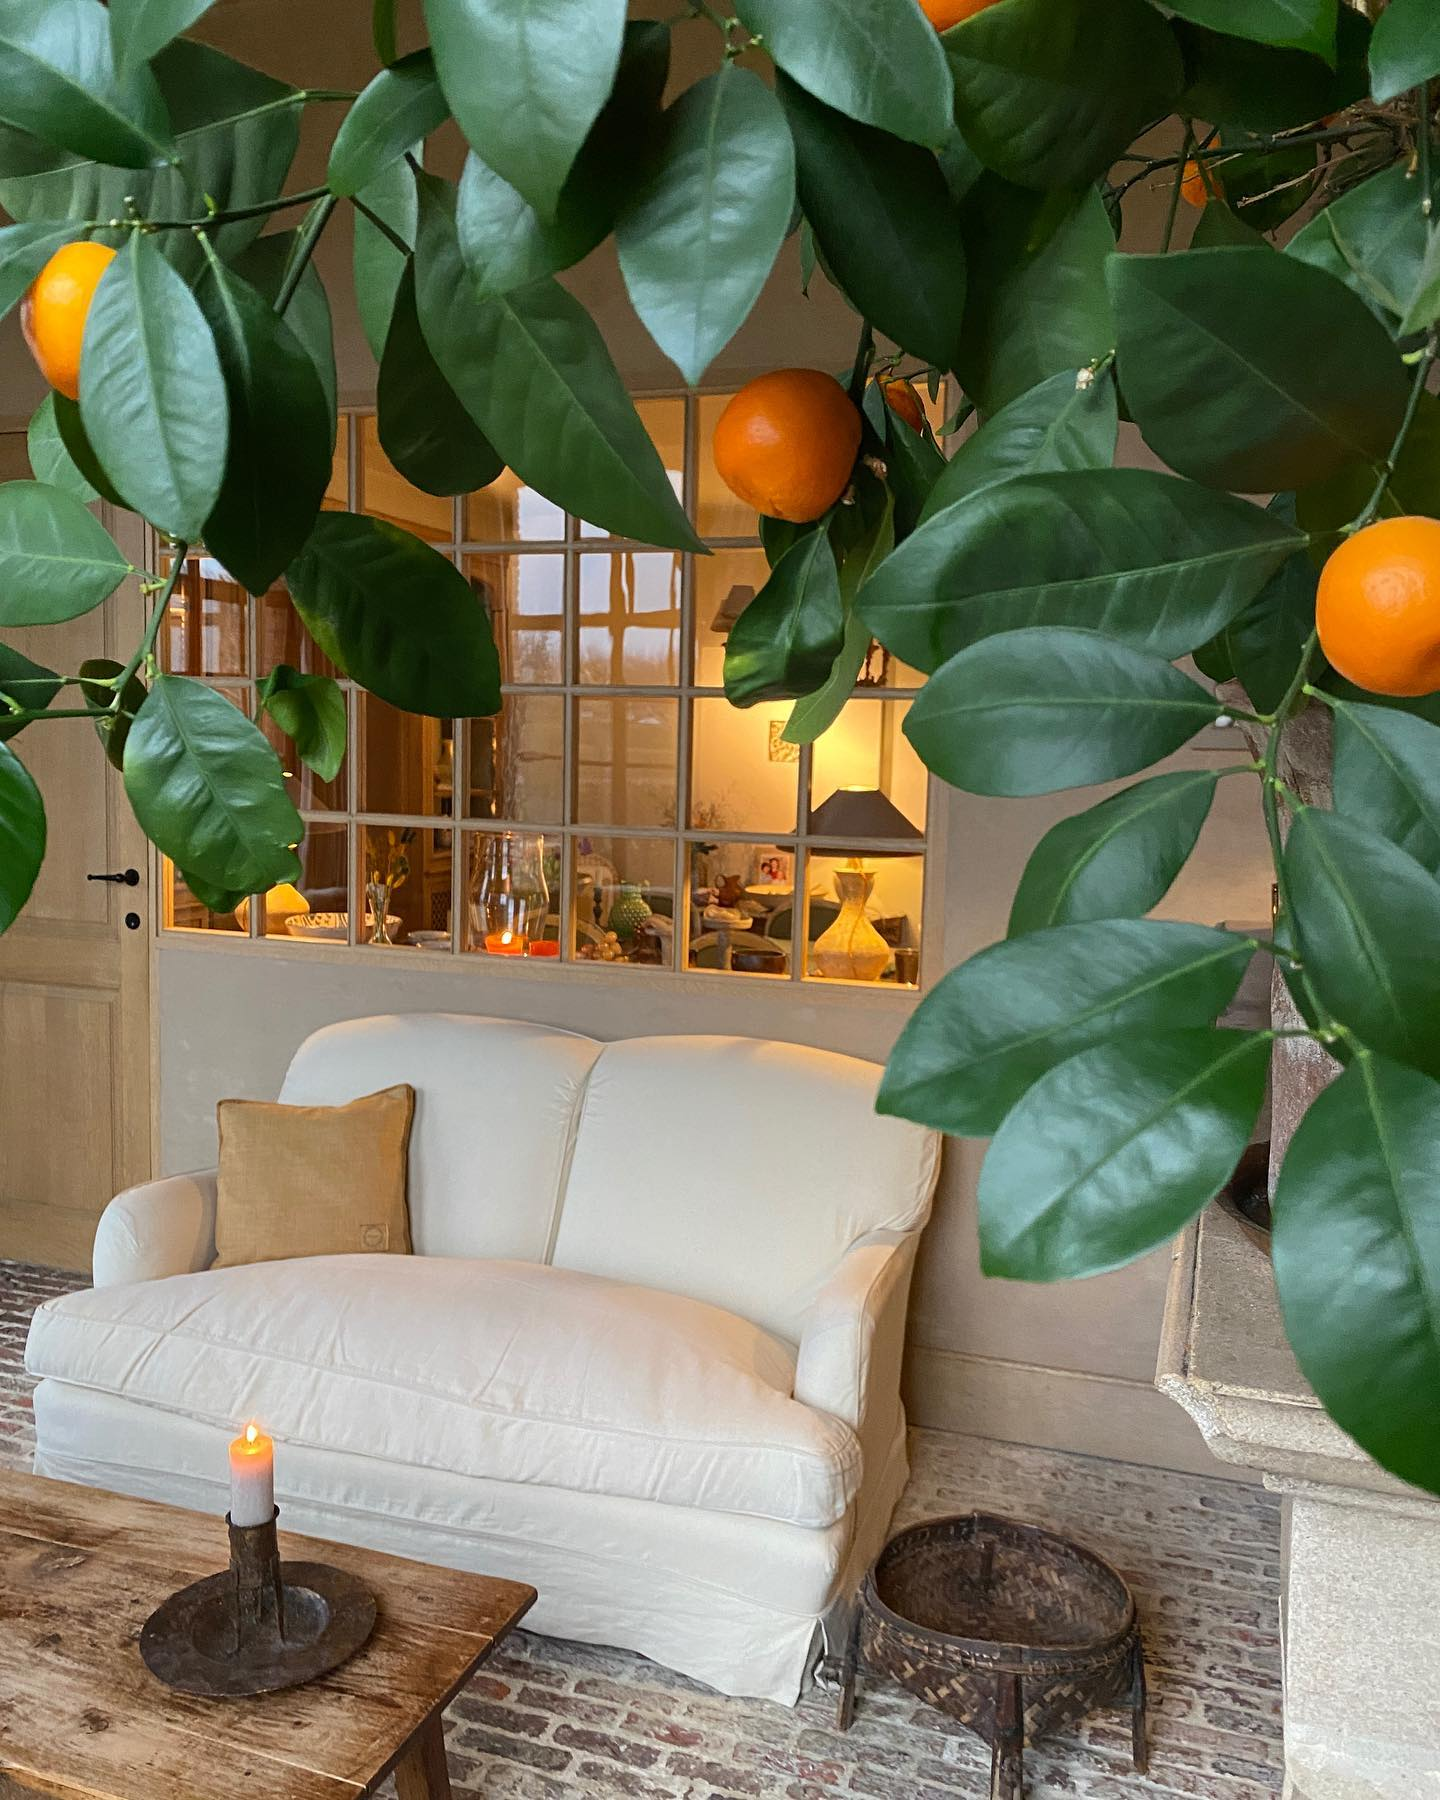 Orangery: Timeless design in the Belgian home and gardens of Greet Lefèvre. #belgianstyle #europeancountry